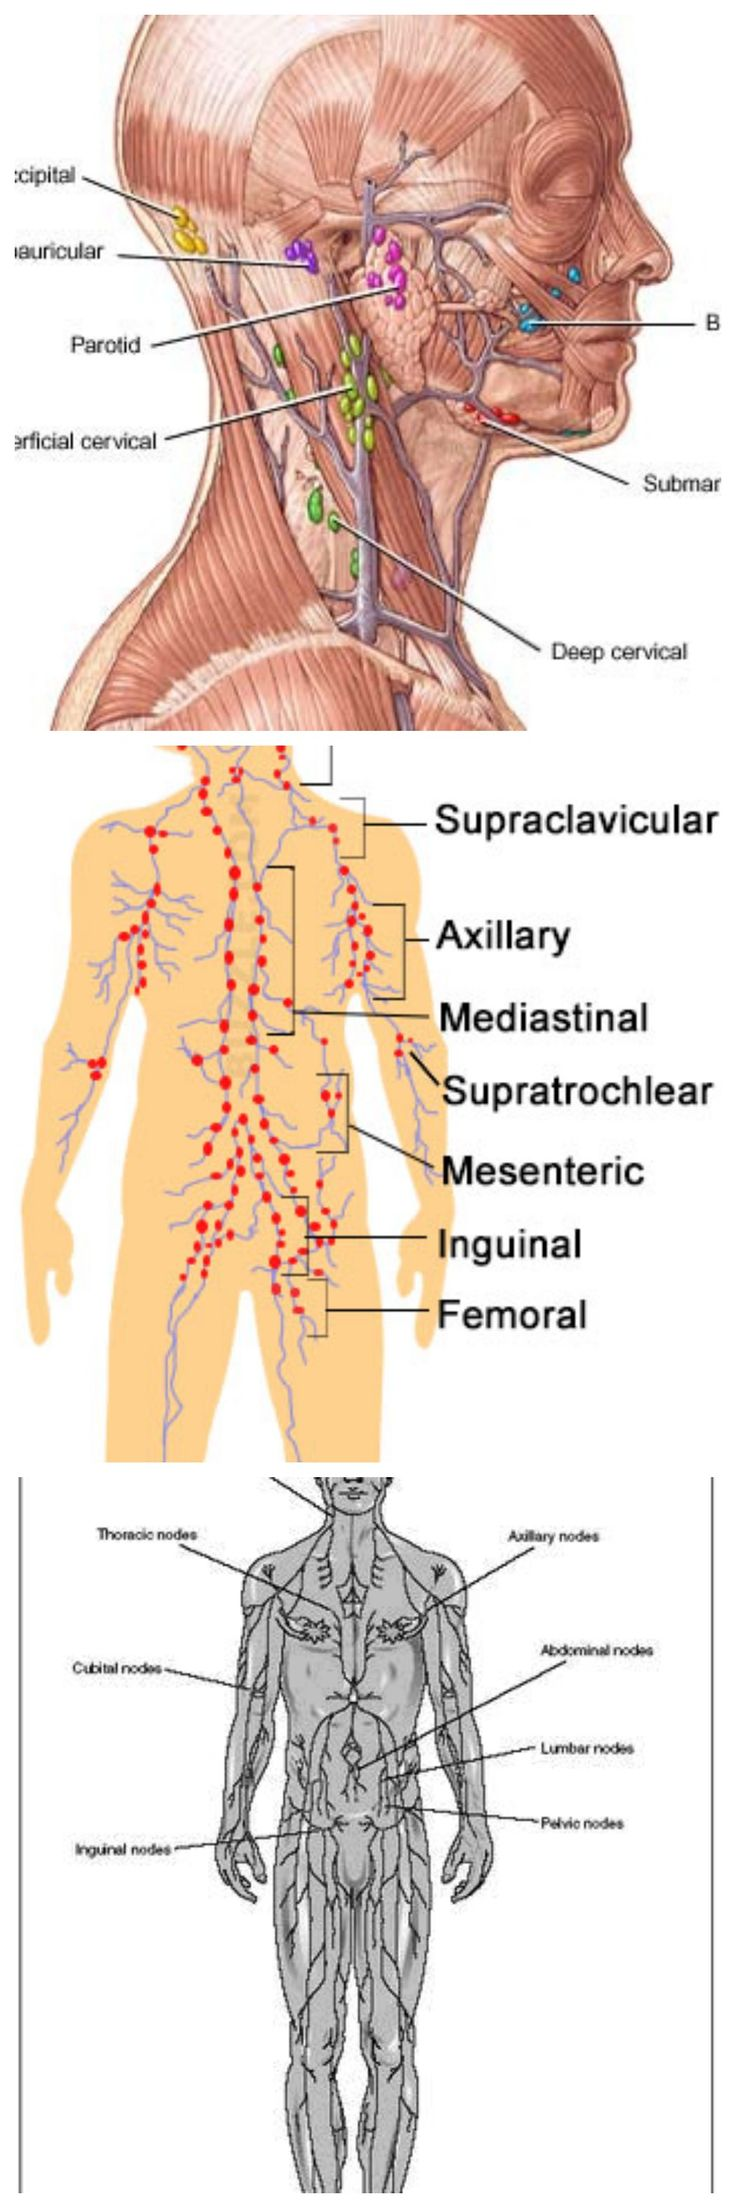 Lymph Nodes : Location, Pictures, Types, Significance ....Lymph node is an organ of the immune system that has a shape of an oval. Lymph nodes are located throughout the body ...... Learn what lymph nodes are, what they do, and why they are important to your overall health ...... CANCER OF THE LYMPH NODES. CANCER